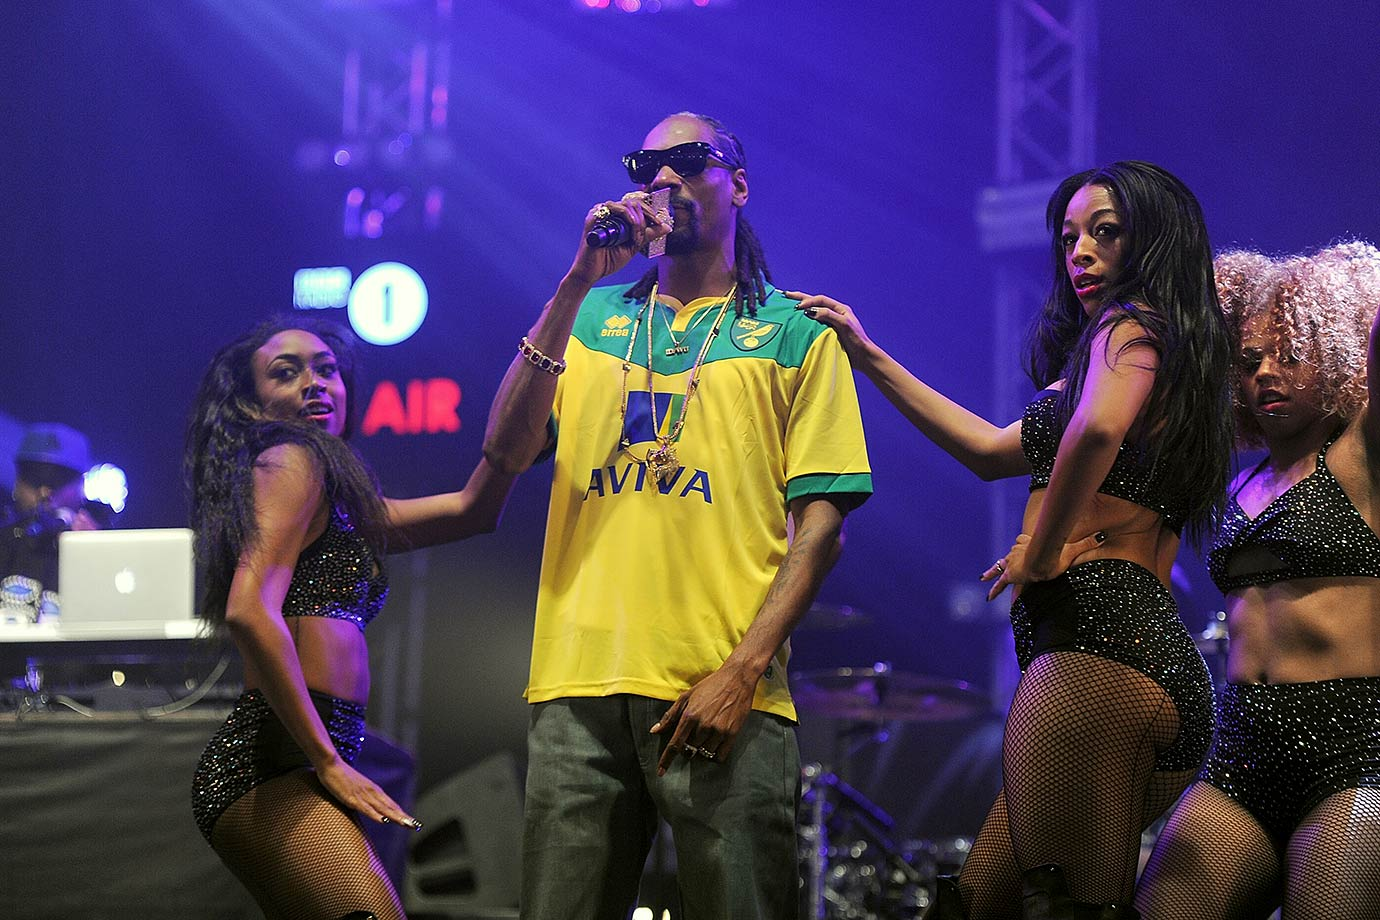 Snoop Dogg performs on stage, wearing a Norwich City F.C. football shirt, during day one of BBC Radio 1's Big Weekend at Earlham Park on May 23, 2015 in Norwich, England.